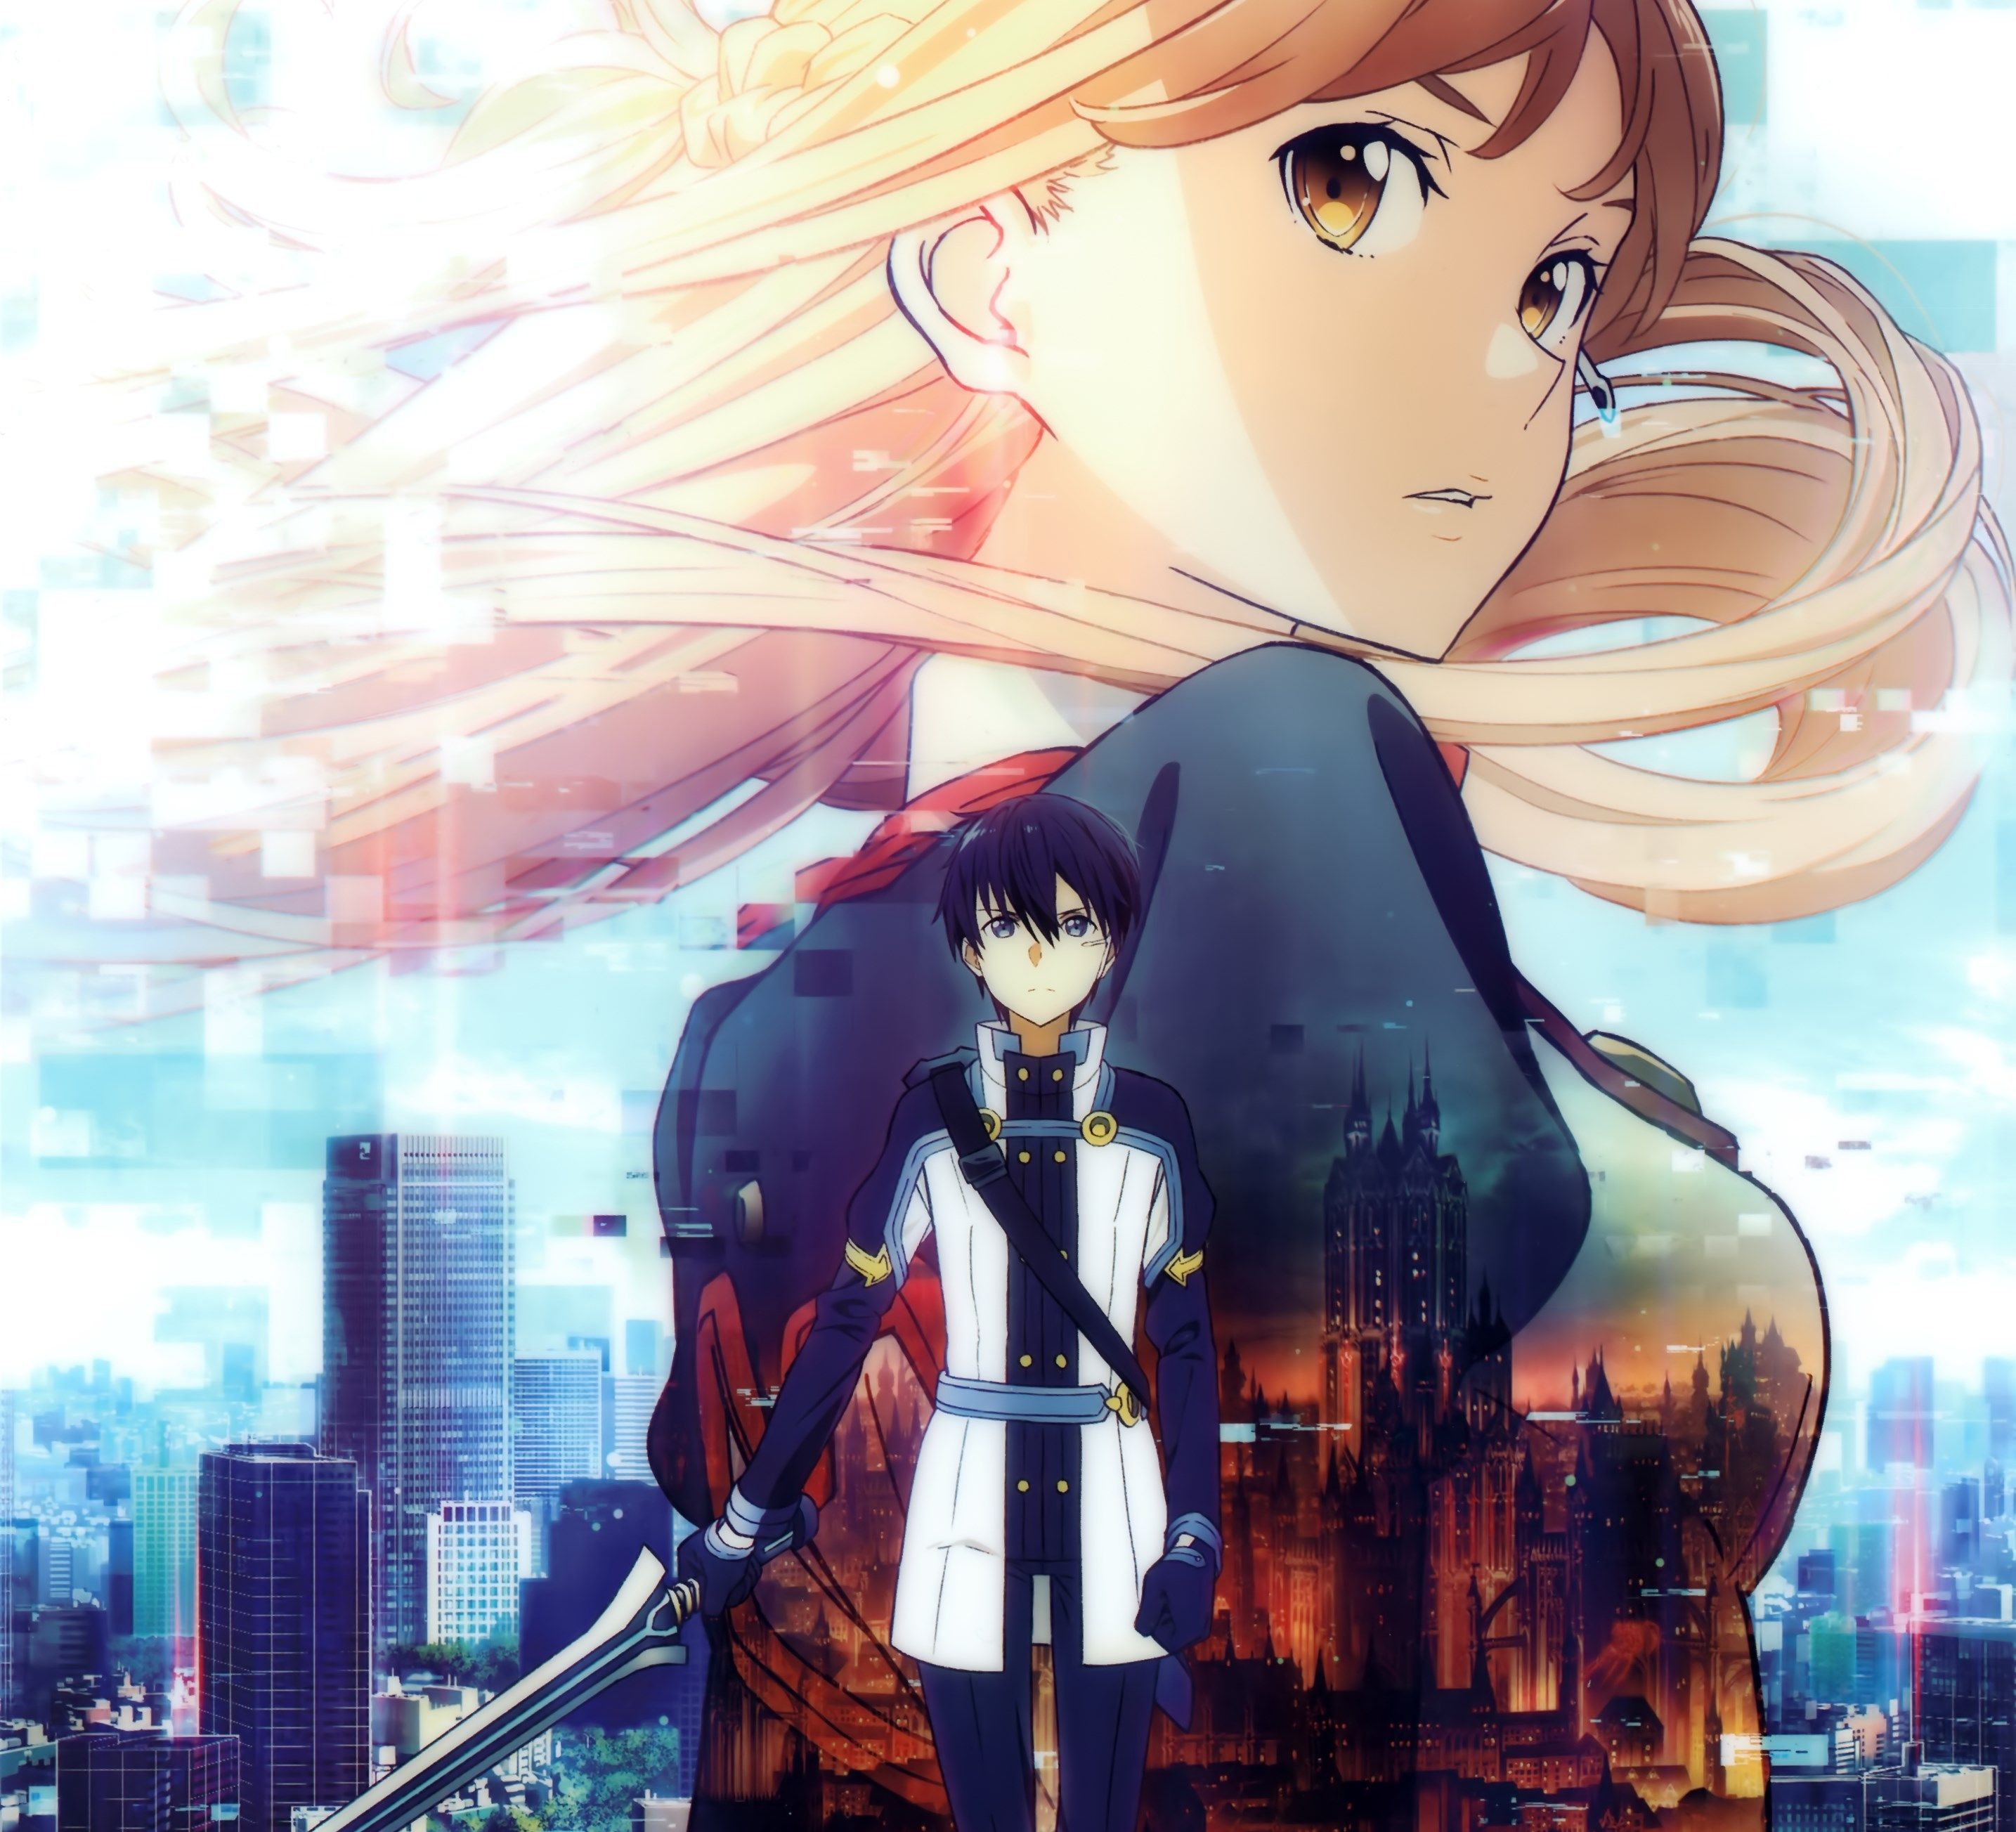 Best Wallpaper Movie Sword Art Online - 05073086c3b0af354b66ca4a4f243203  Pic_46845.jpg